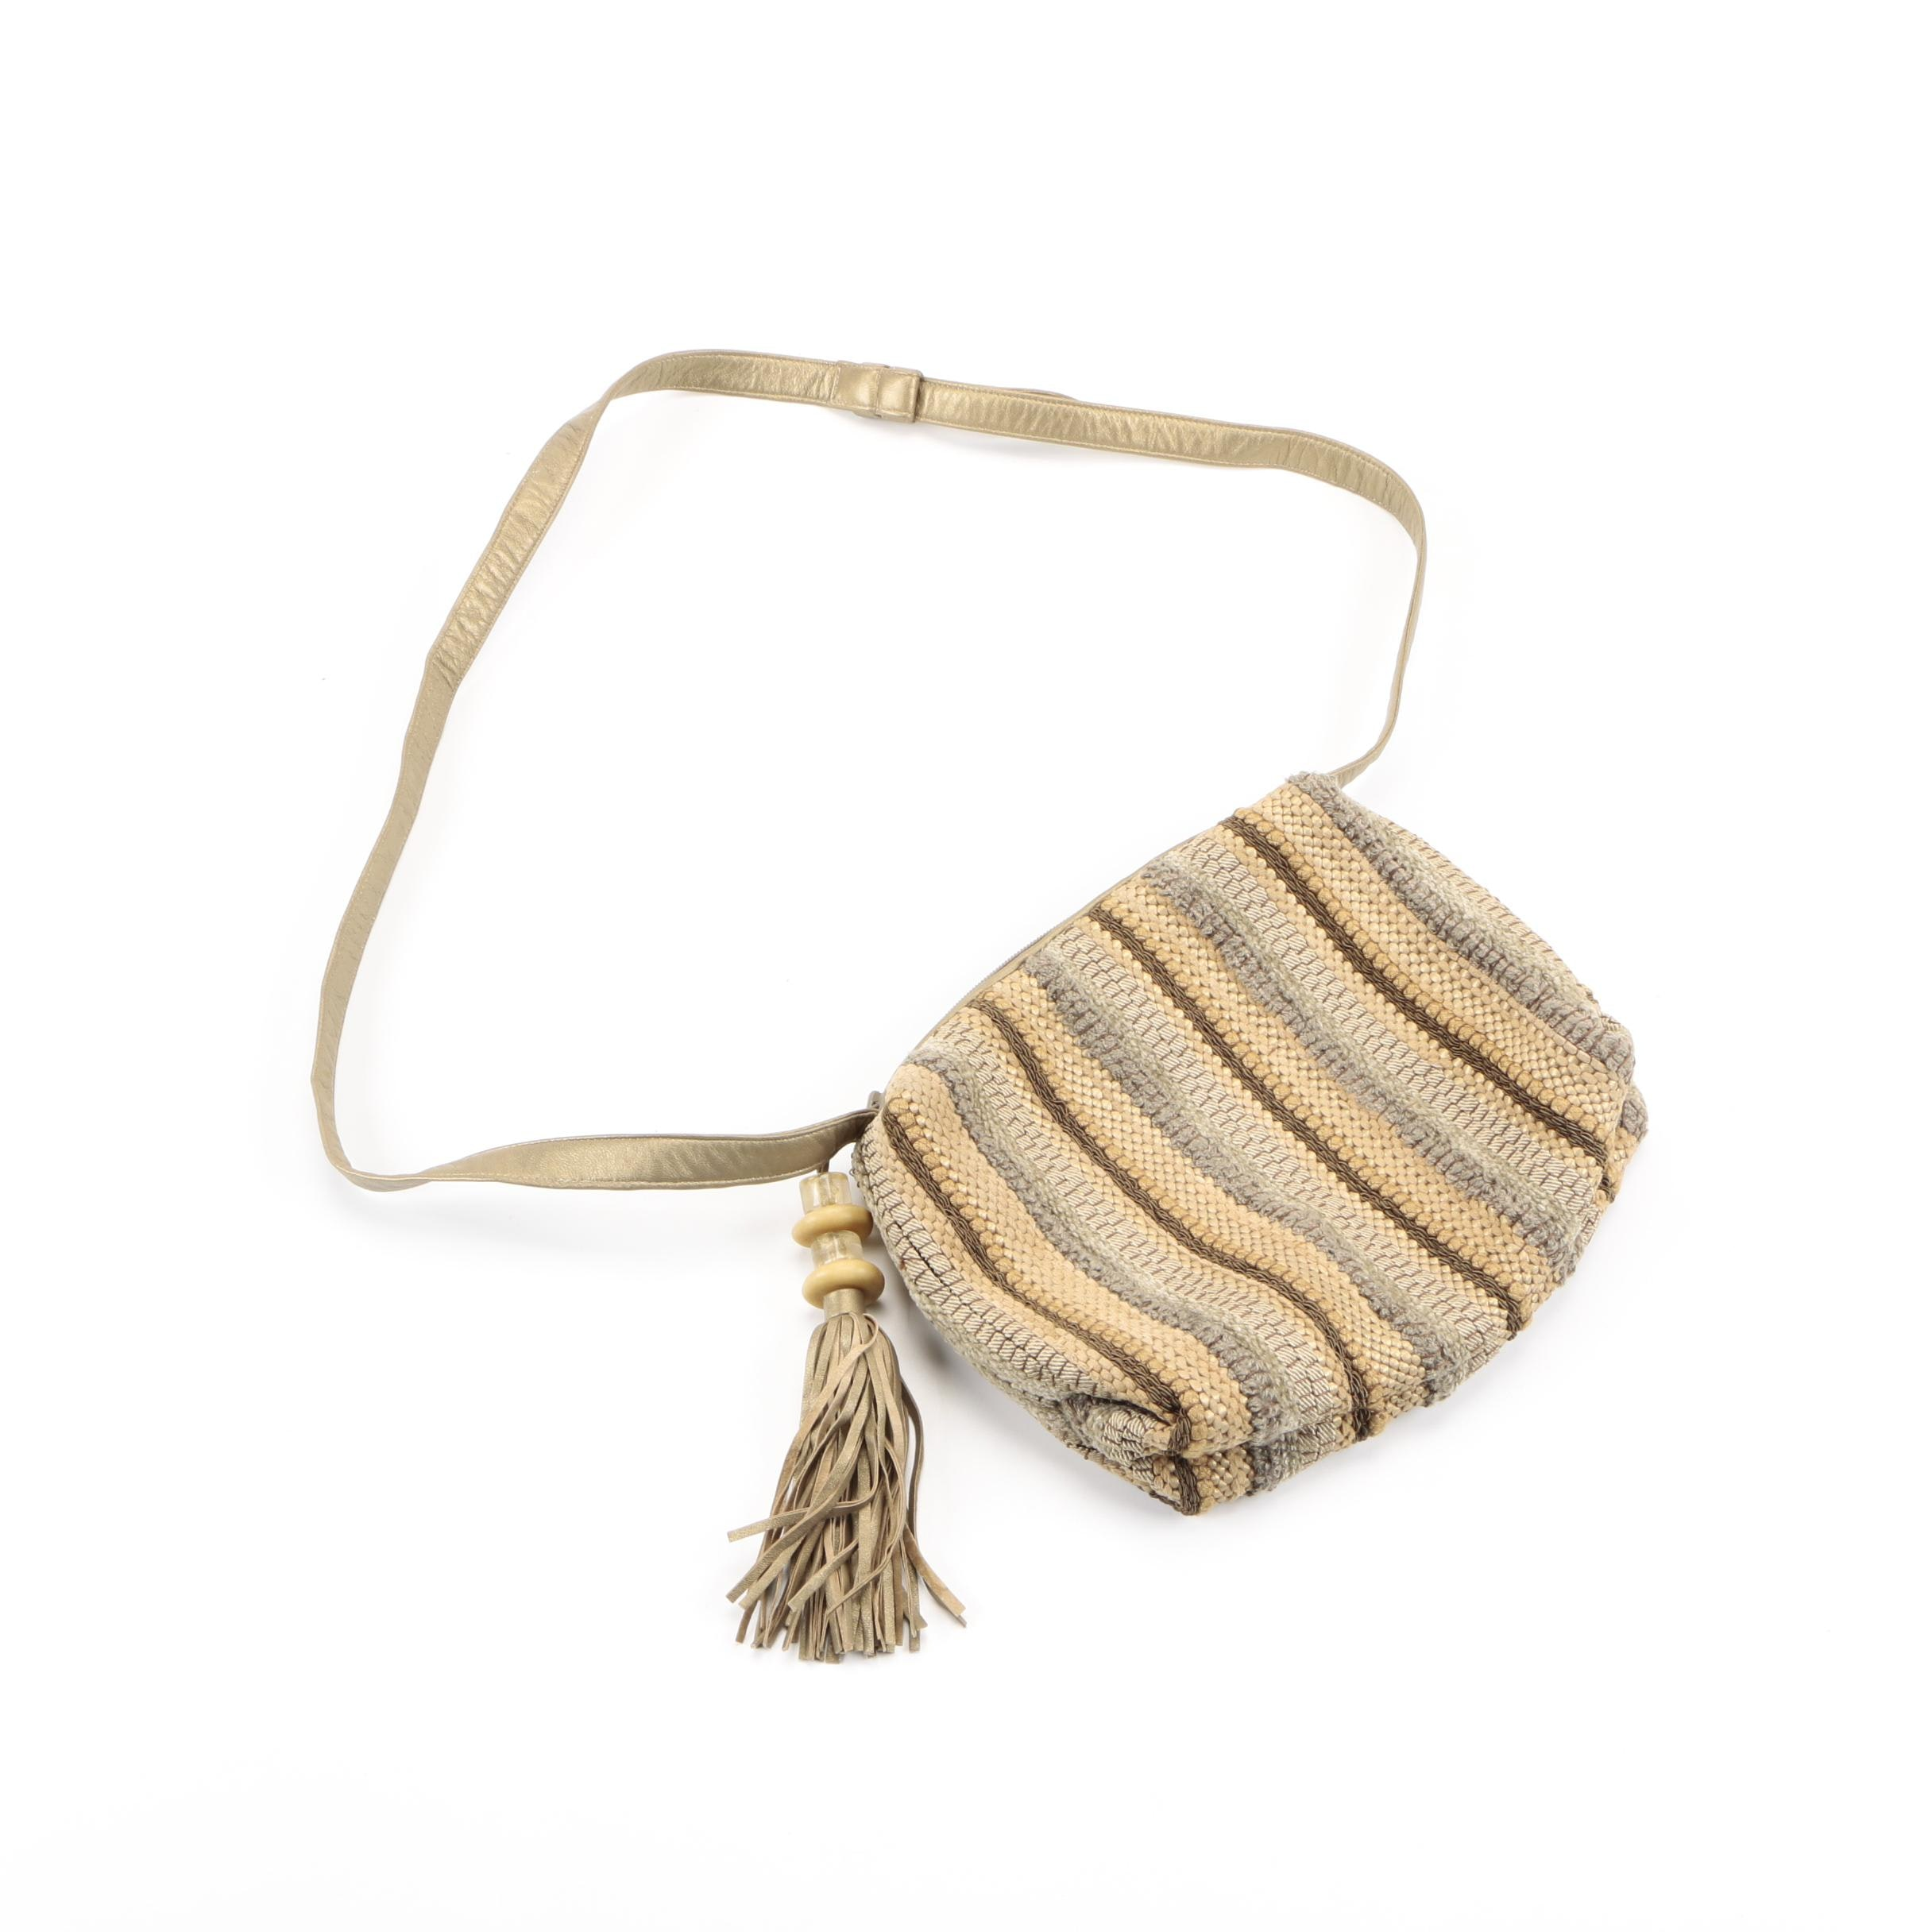 Sharif Knit and Faux Leather Crossbody Bag